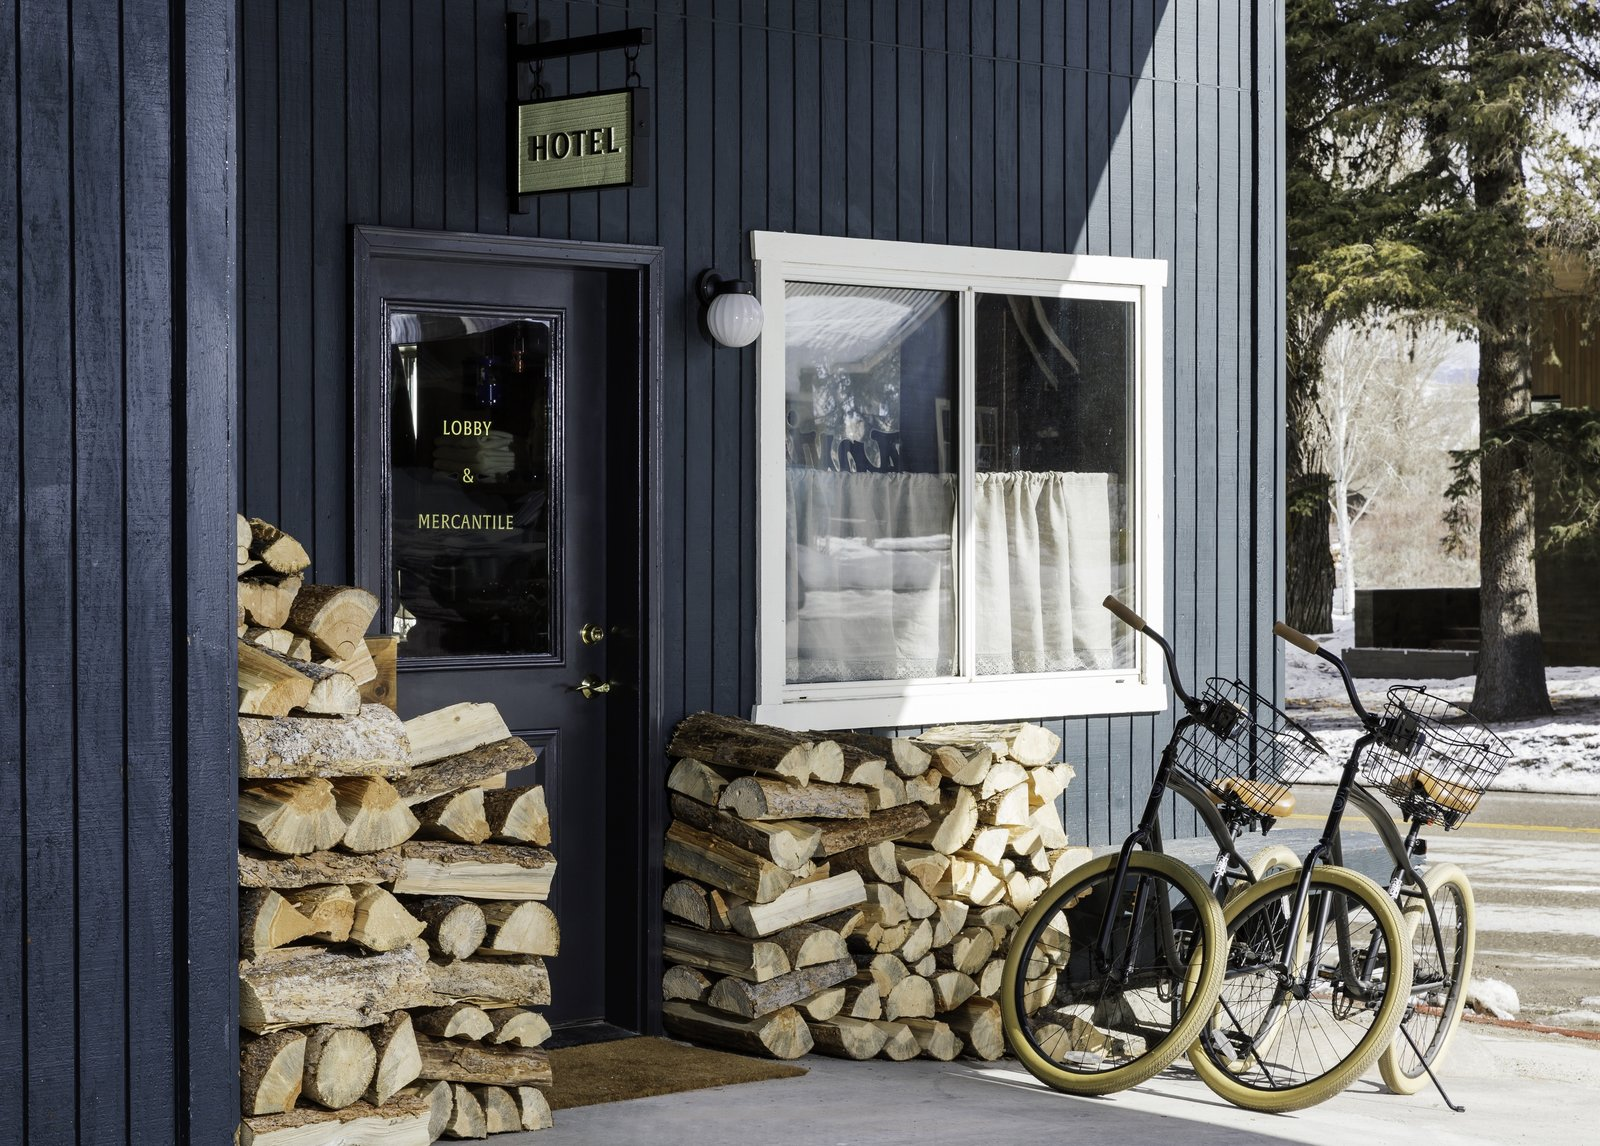 Classic West Meets Contemporary Cool at the Anvil Hotel in Jackson, Wyoming - Photo 7 of 12